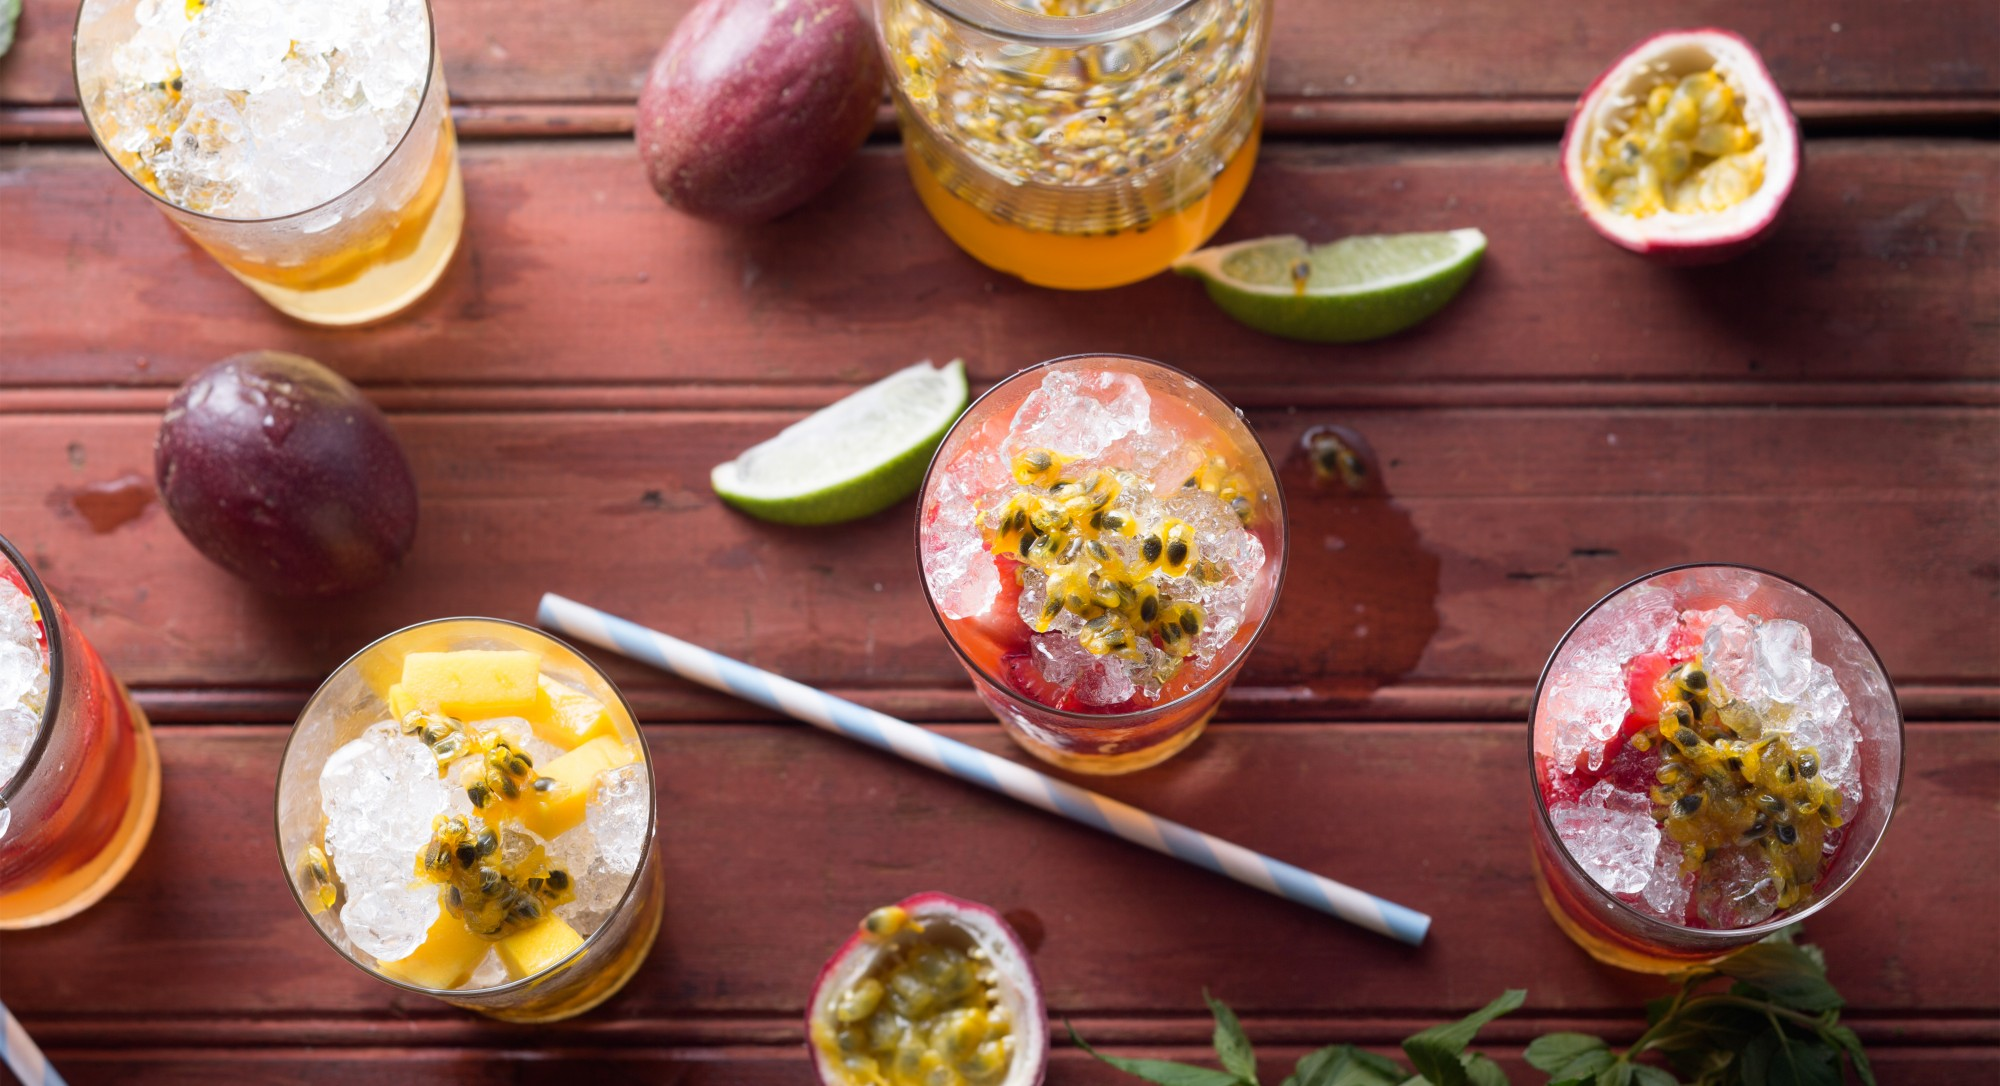 Farmers Market Find: An Icy, Tangy Passion Fruit Treat